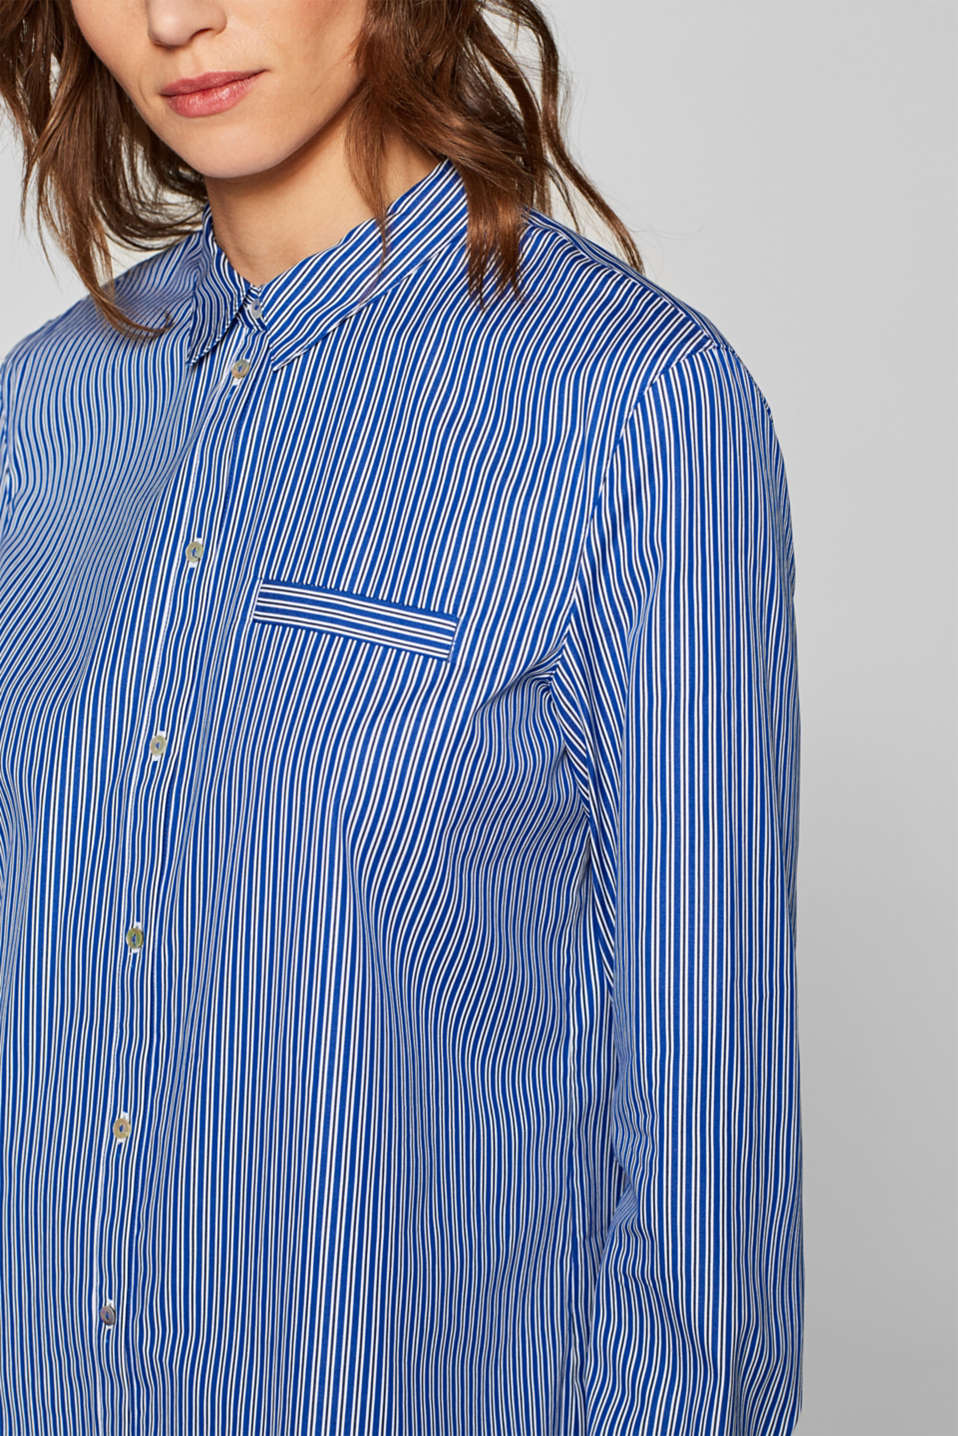 Blouses woven, BRIGHT BLUE, detail image number 2